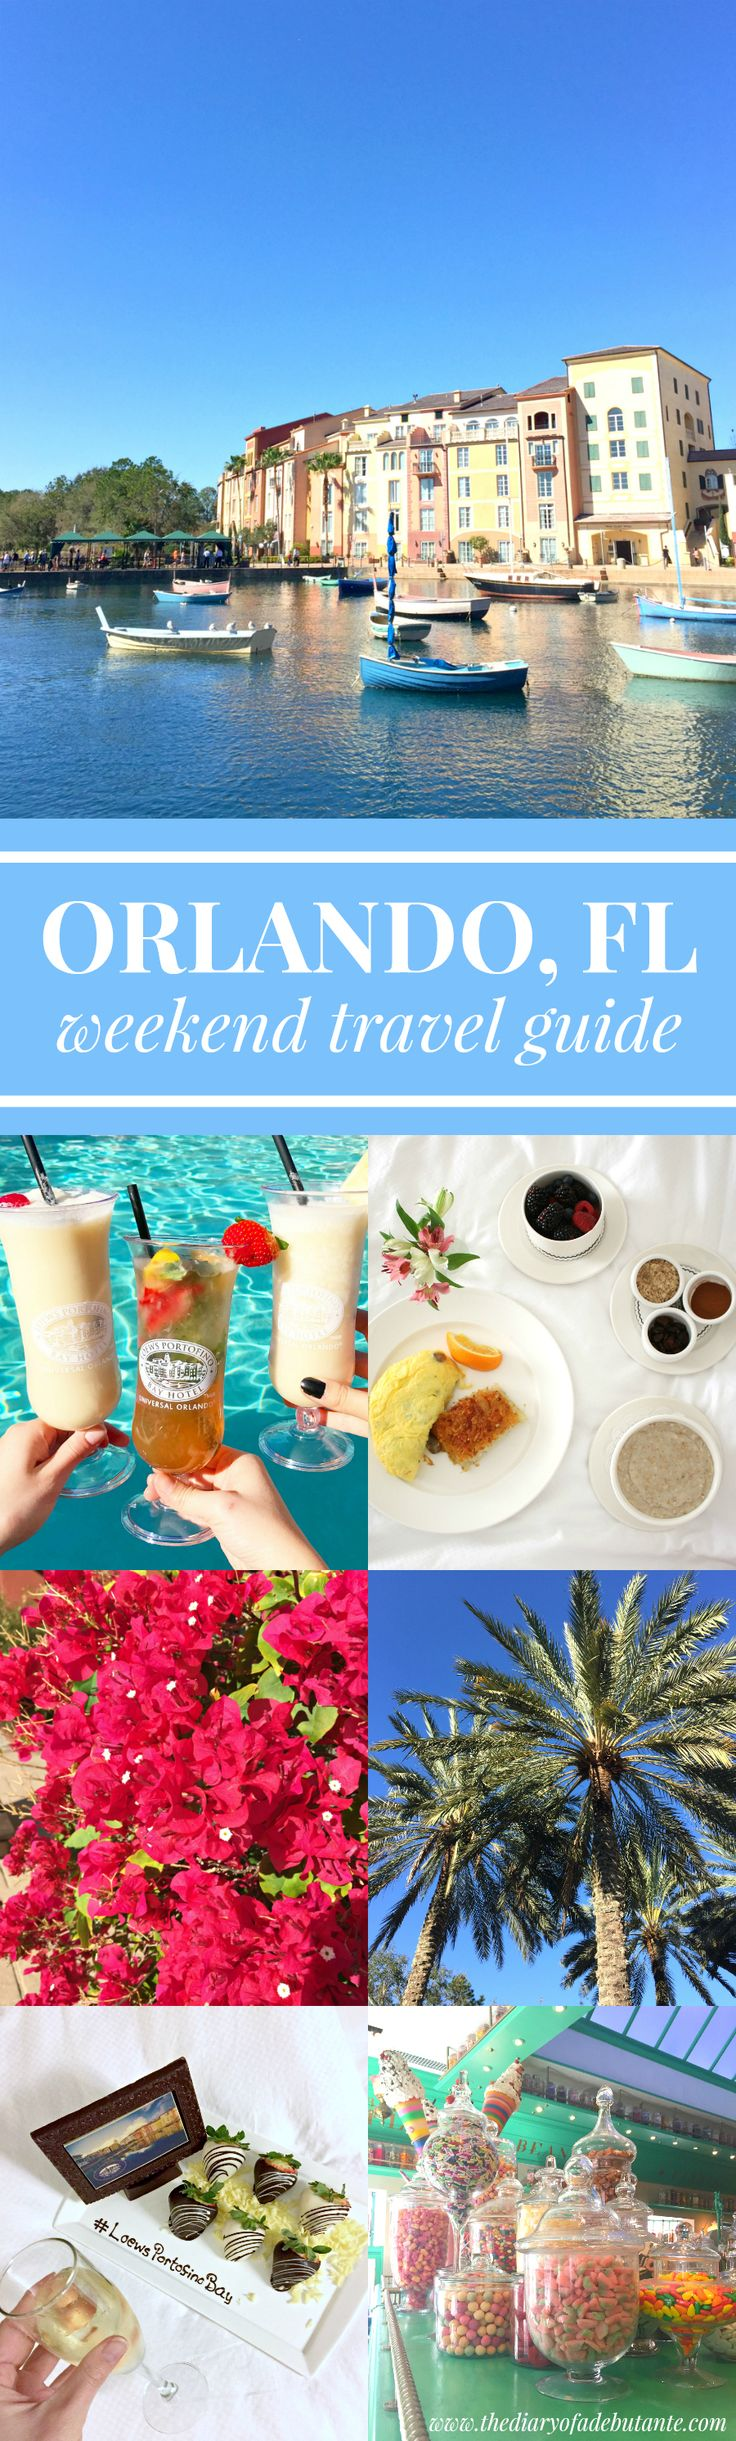 Travel guide to the ultimate romantic weekend getaway in Orlando, Florida. Highly recommend staying at the Loews Portofino Bay Hotel! Its Italian countryside-inspired property is stunning.